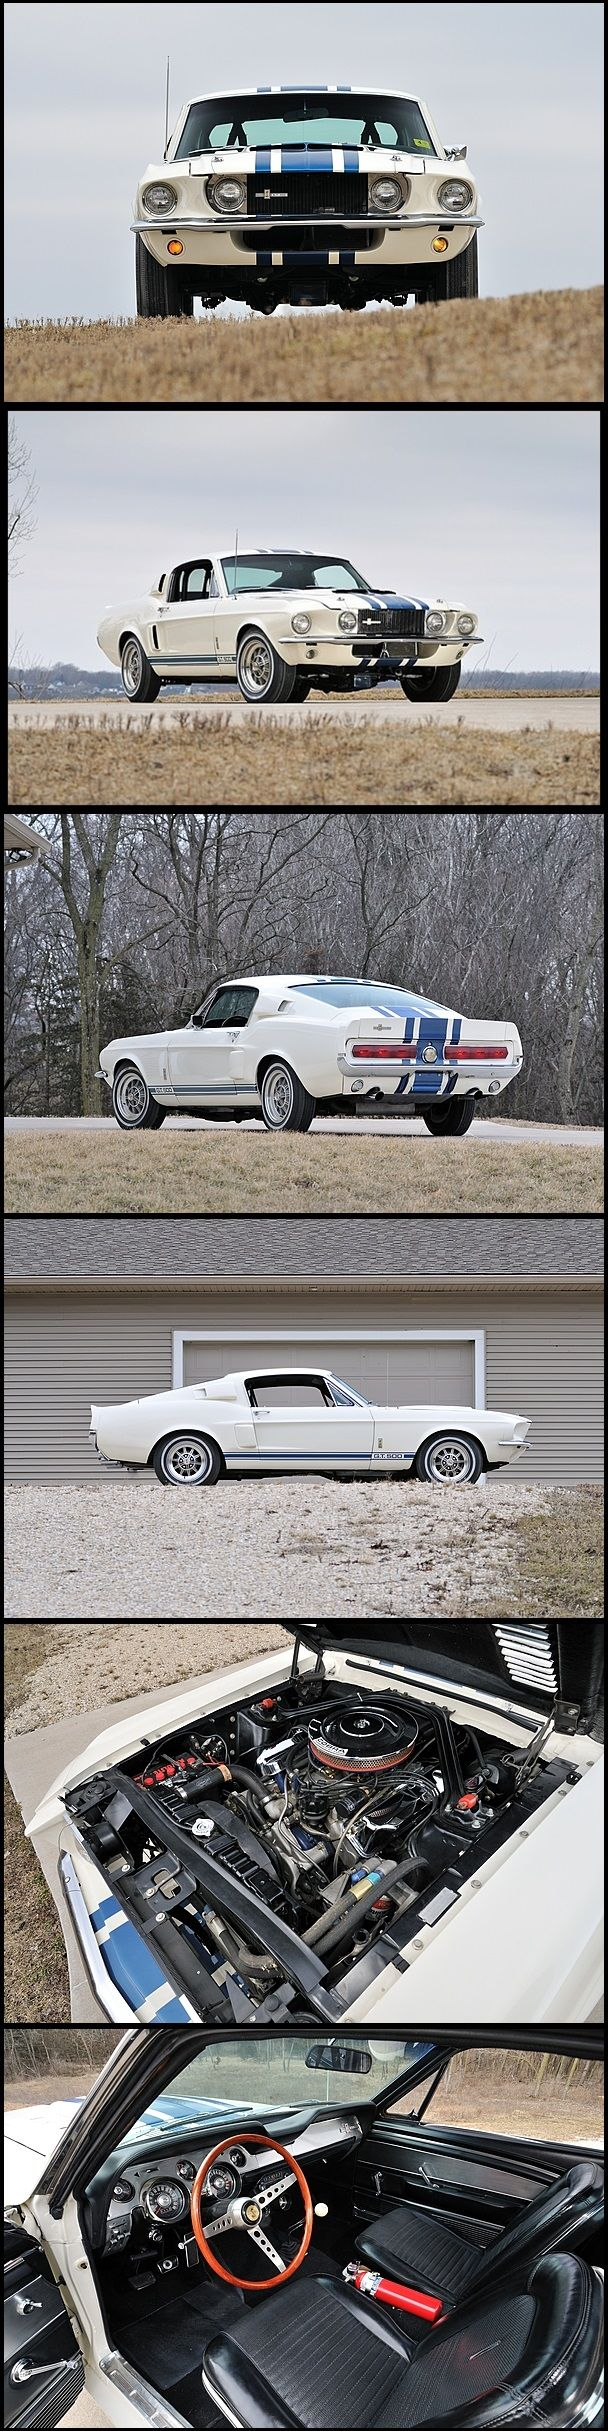 1967 Shelby GT500 Super Snake this has to be one of the all time GREATS! Love this car.